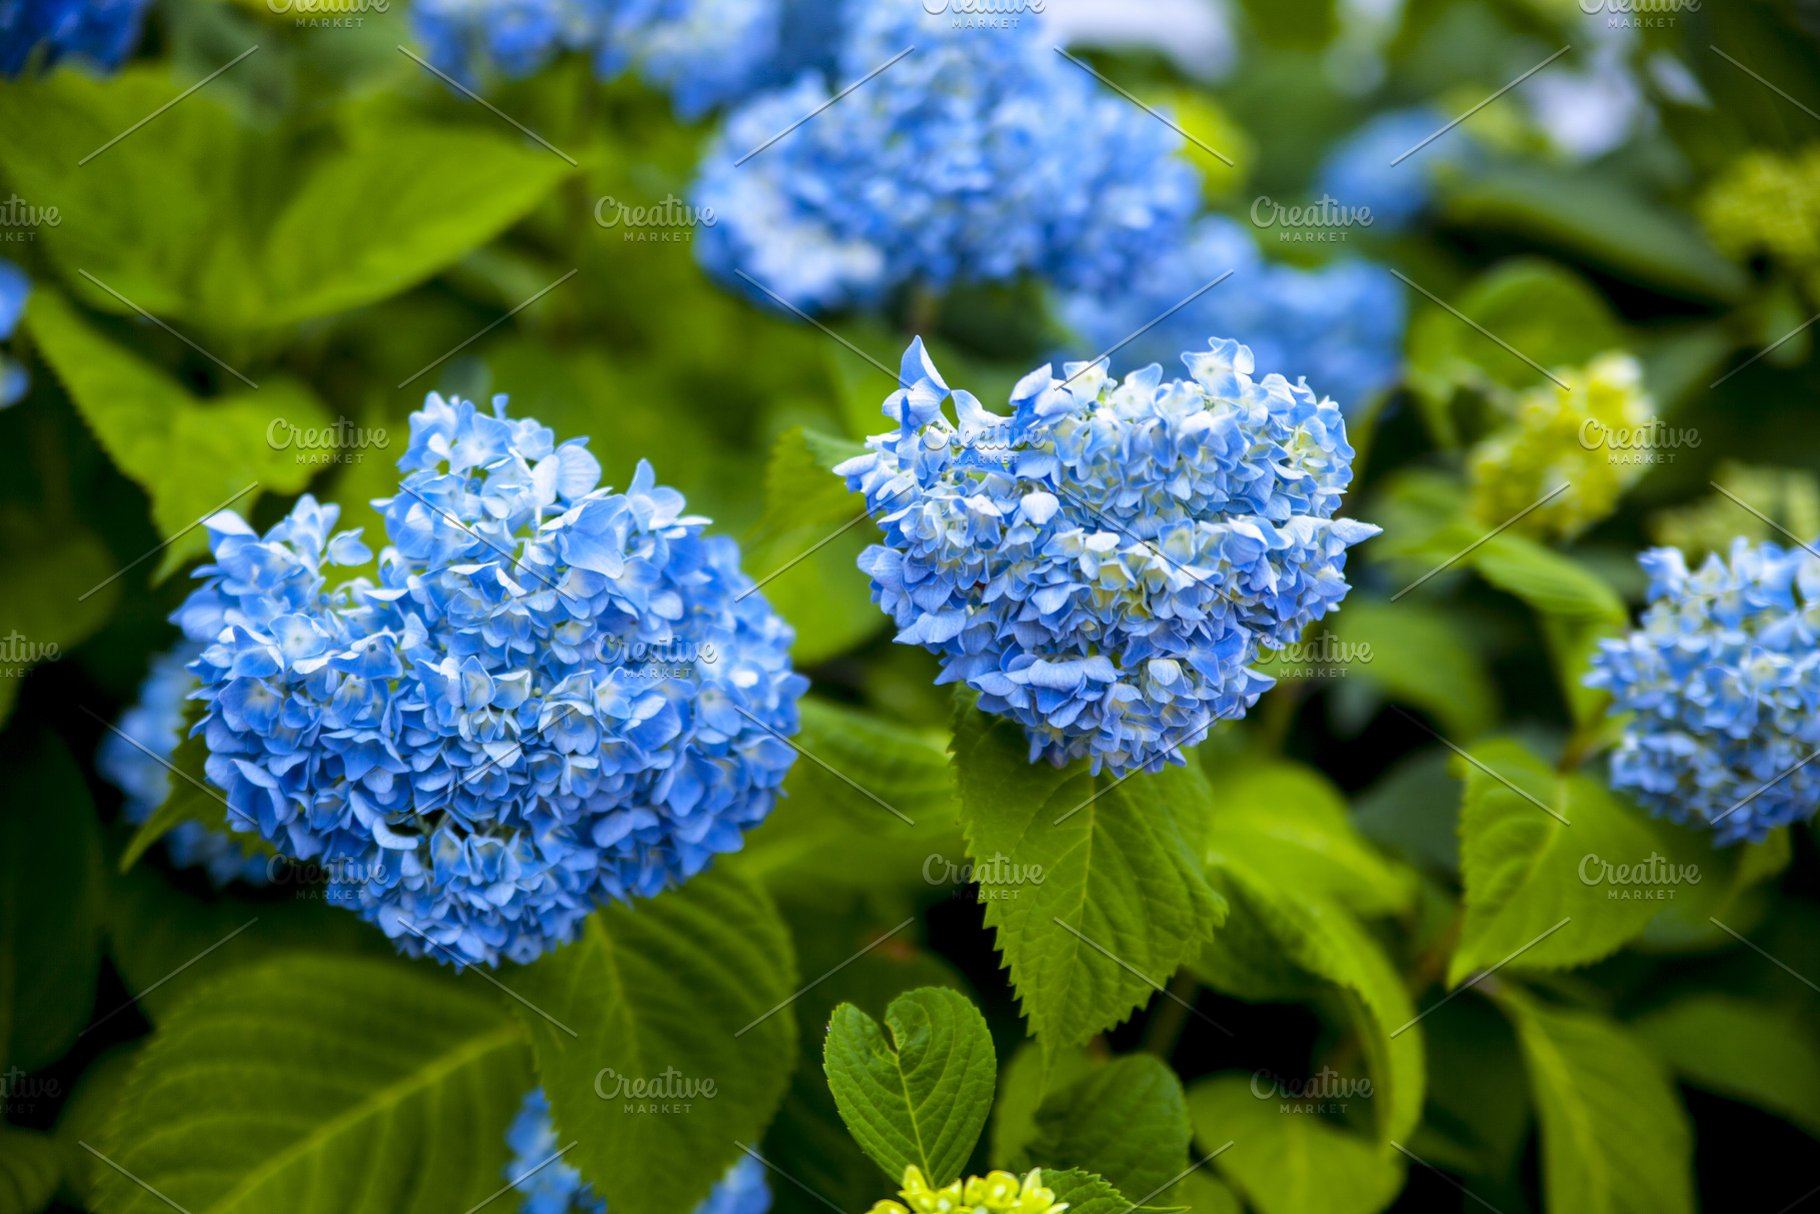 Blue Hydrangea Flowers On Bush High Quality Nature Stock Photos